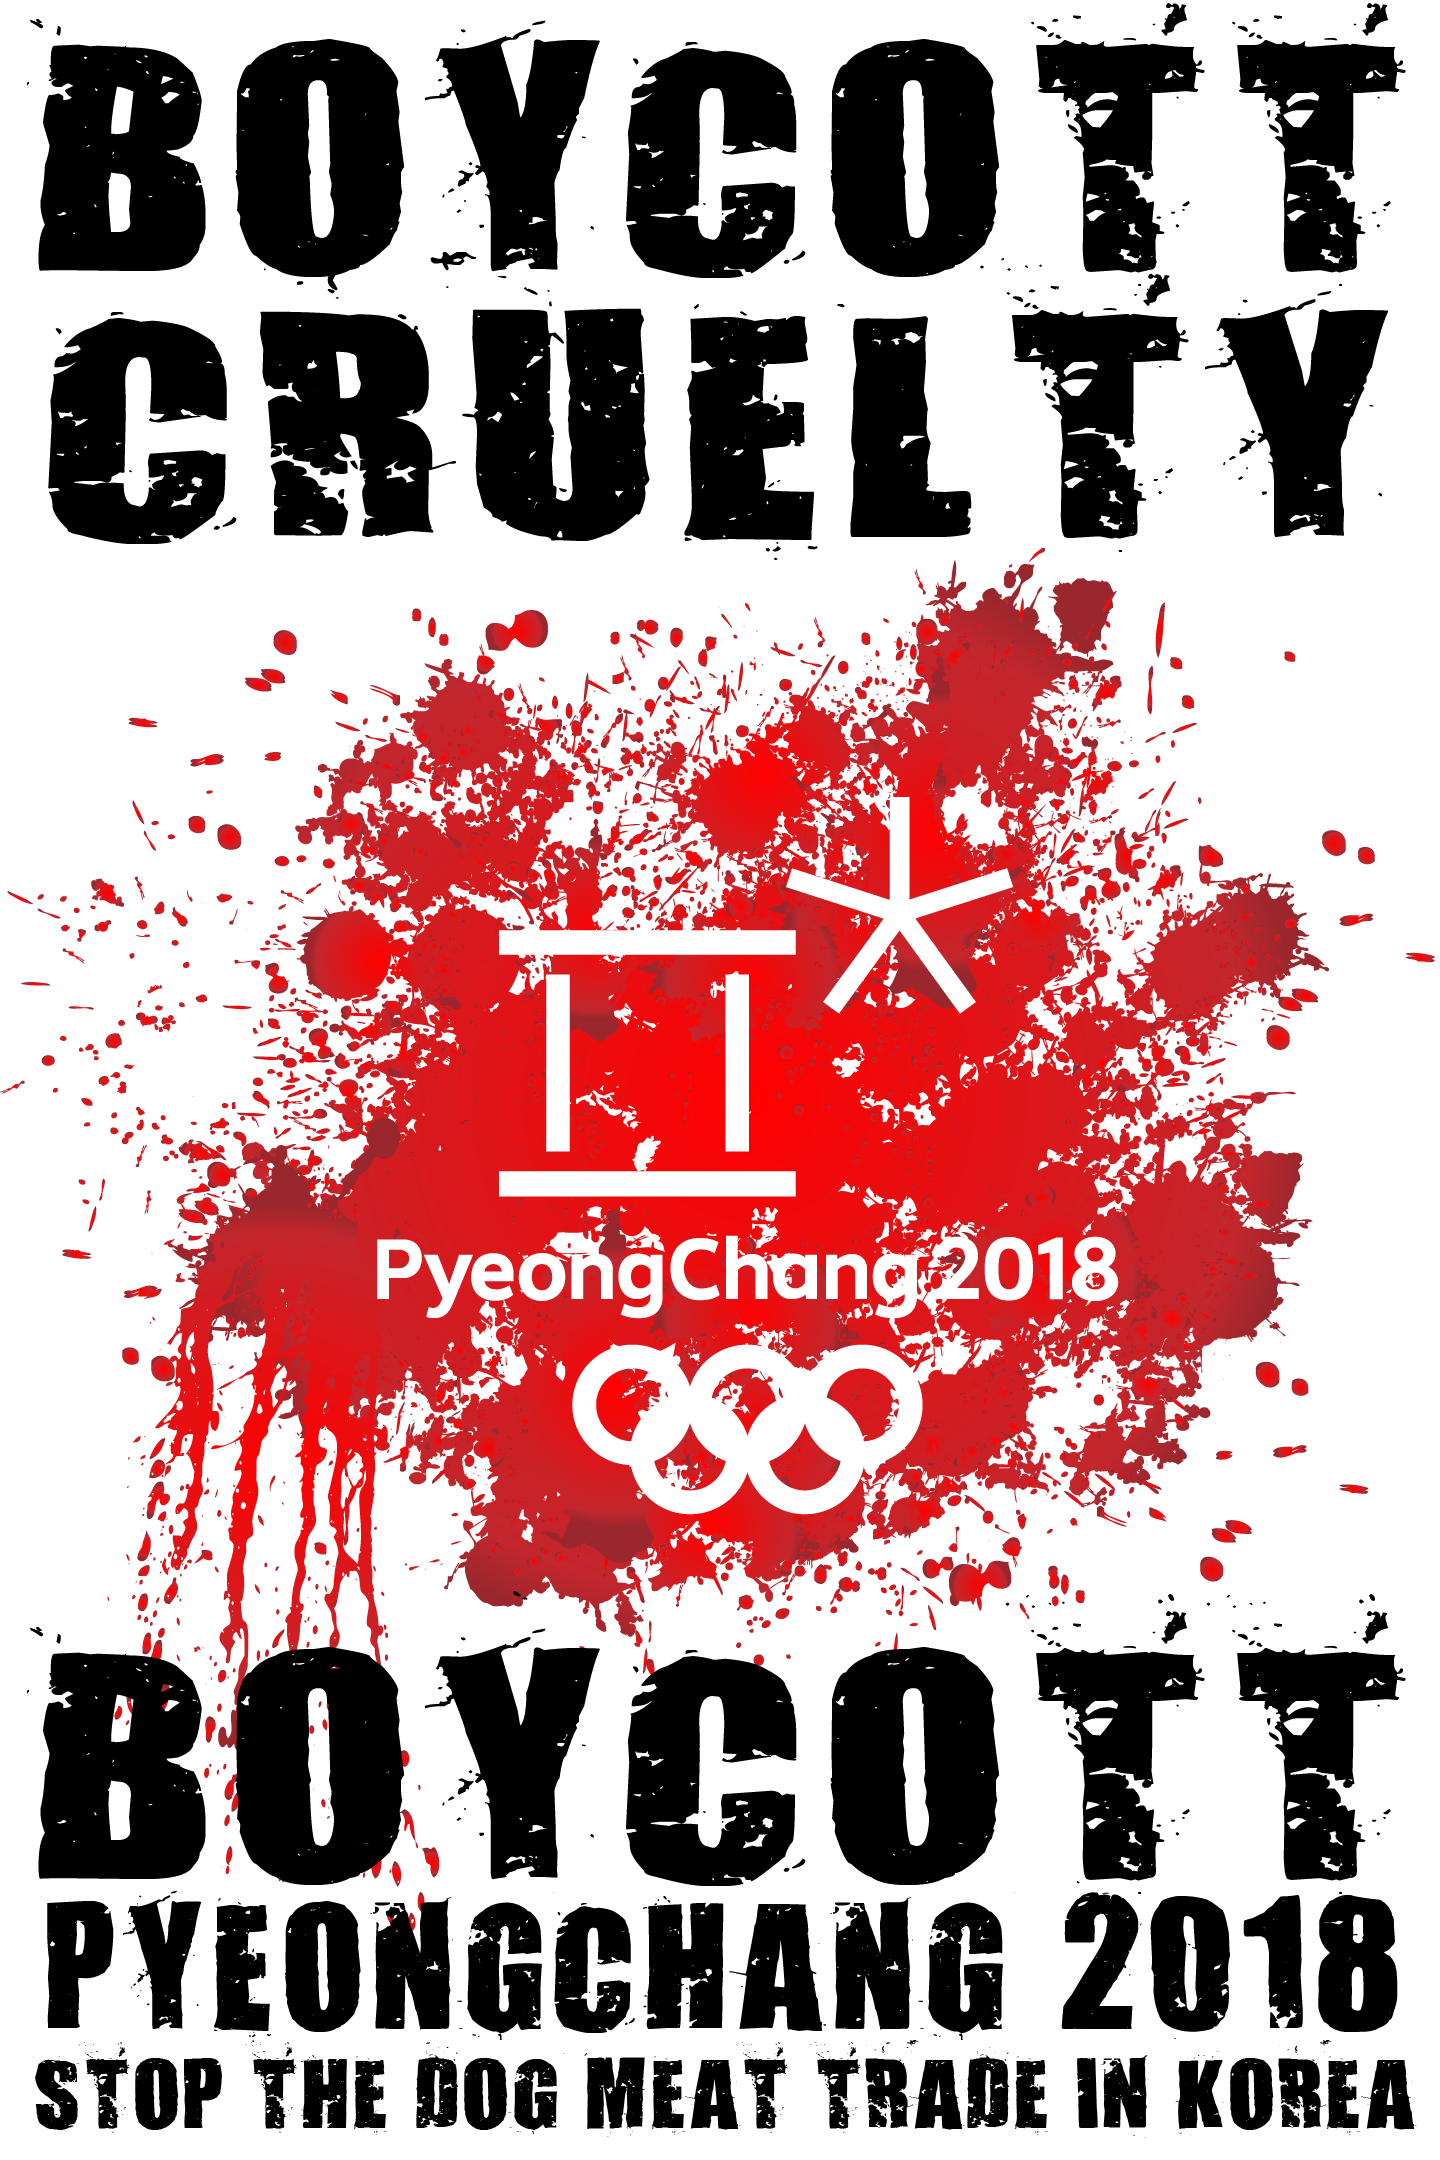 https://koreandogs.org/noc-take-a-stand/?utm_source=sendinblue&utm_campaign=The_Clock_is_Ticking!!__Olympic_Committees_Take_a_stand_in_Pyeongchang_2018_against_the_dog_and_cat_meat_trade!&utm_medium=email